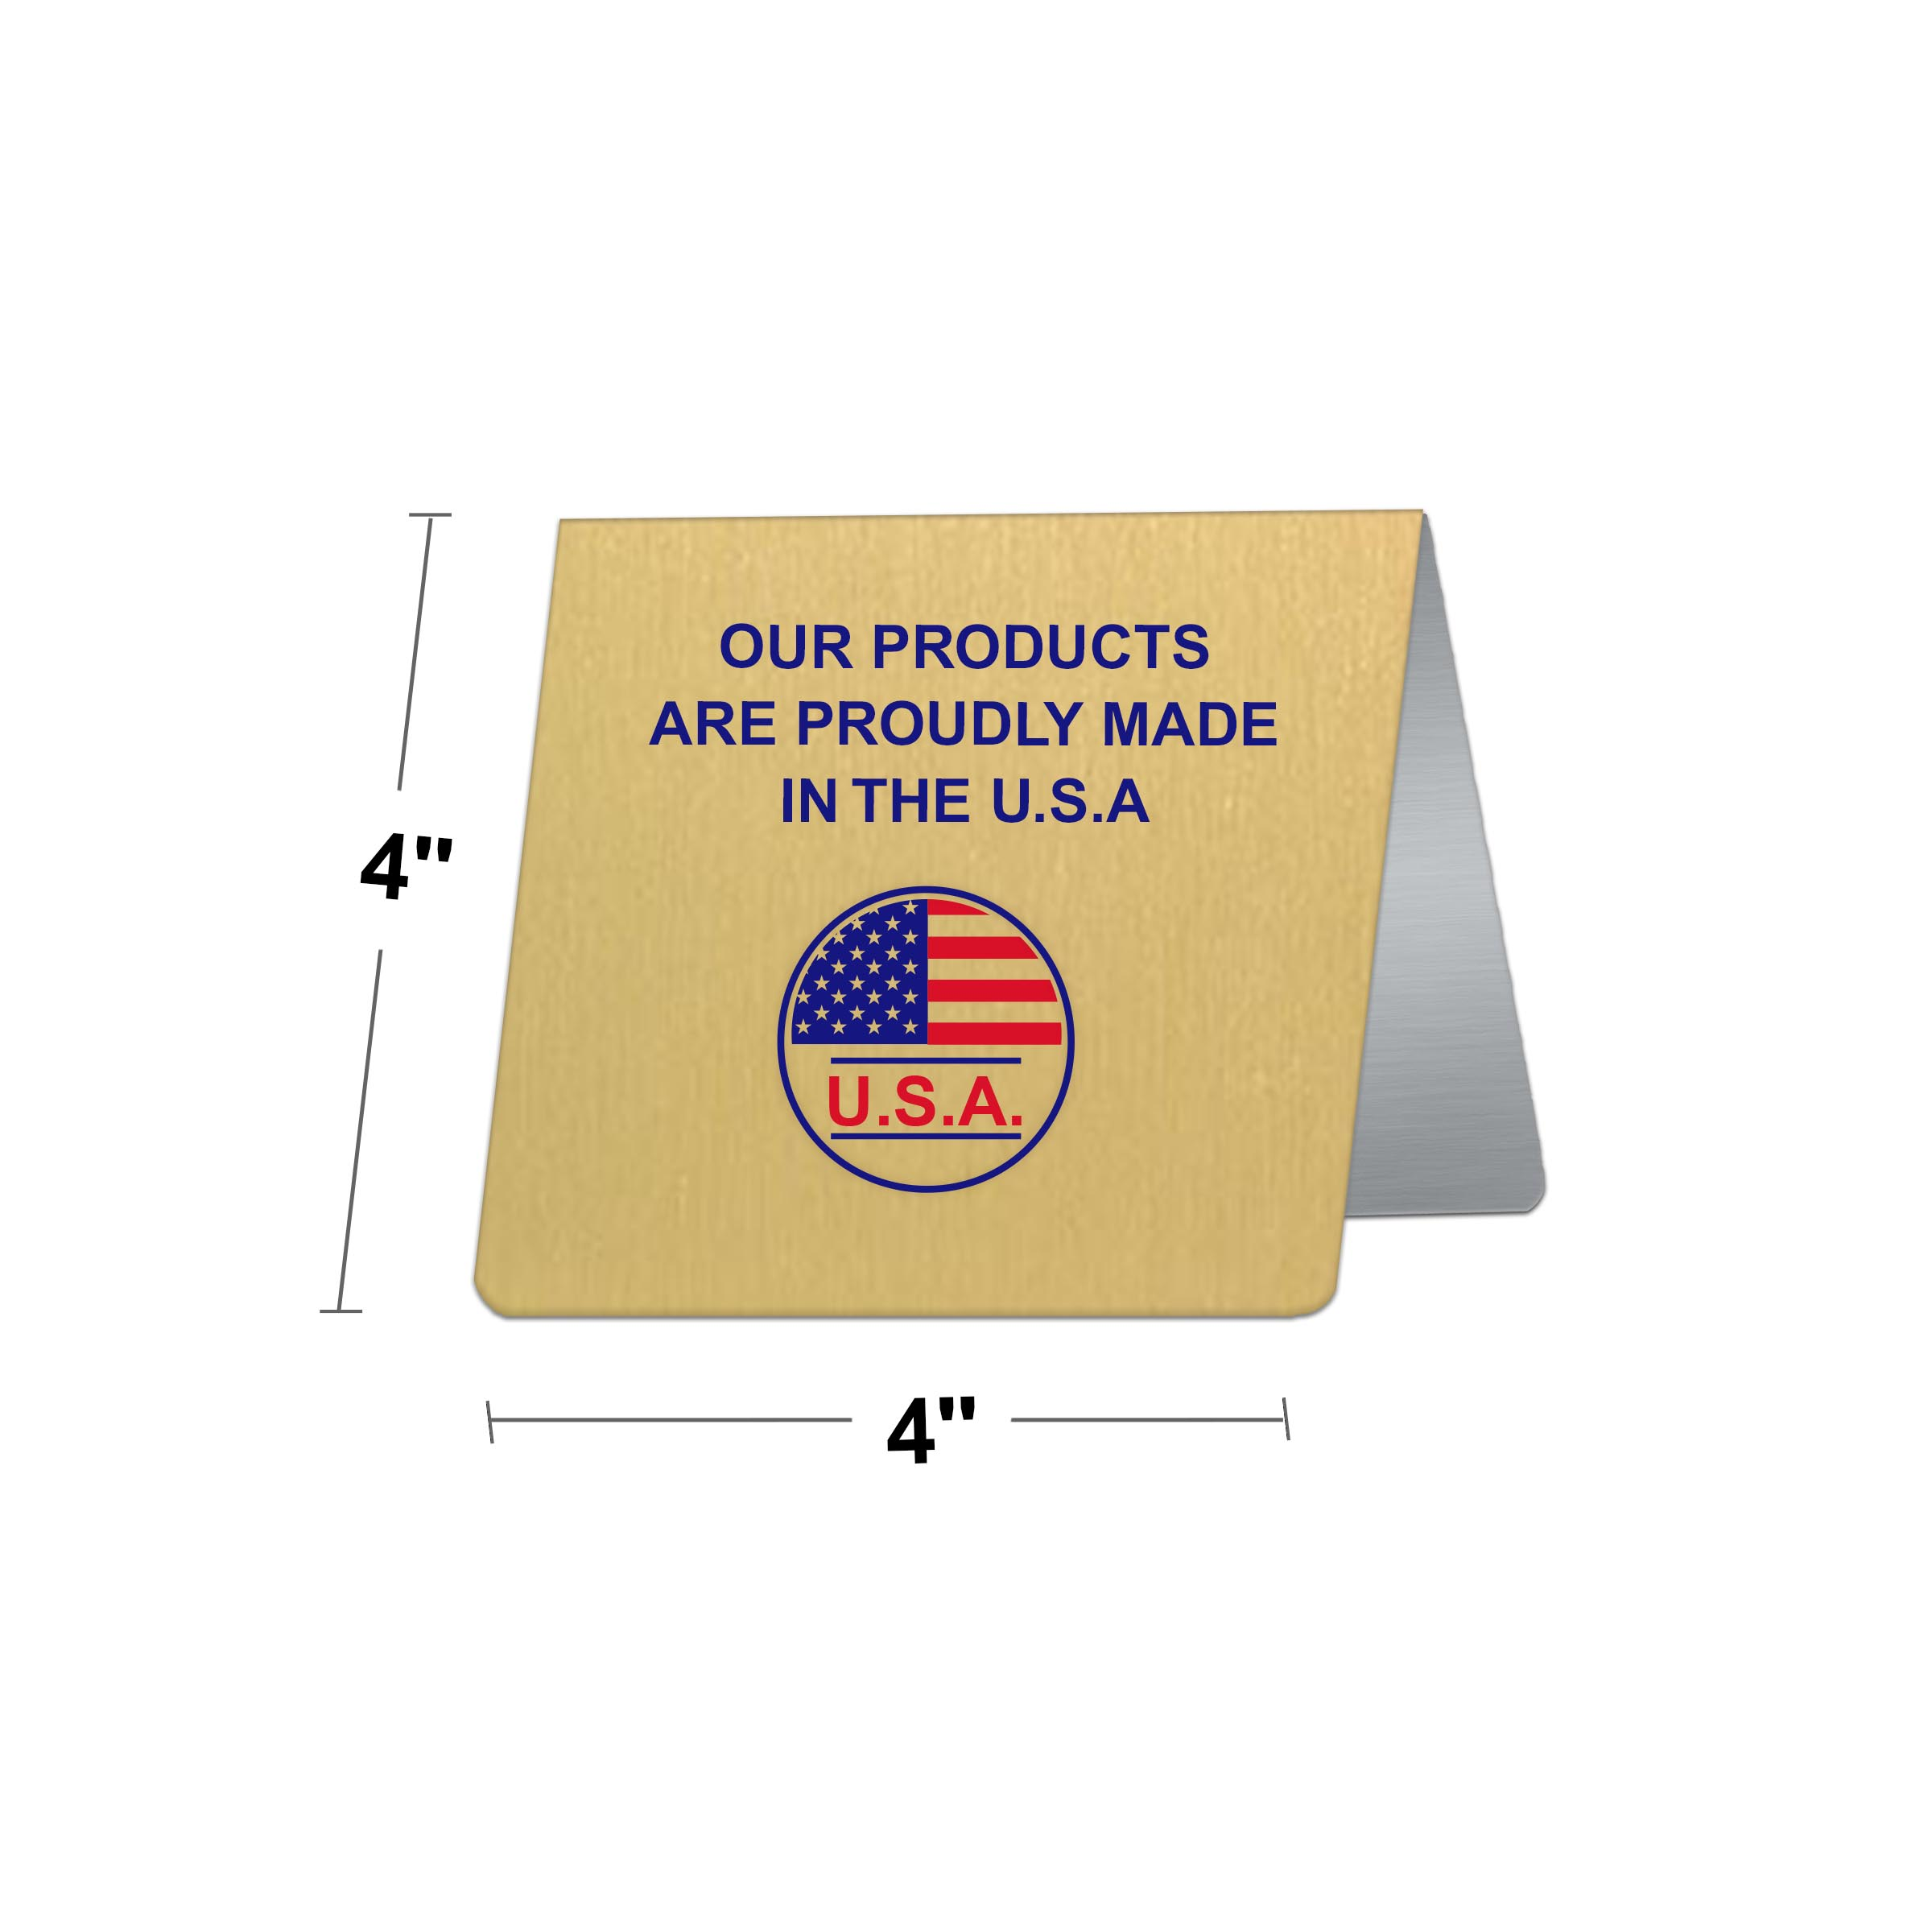 Fabulous 4 X 4 Custom Printed Table Tent Signs Download Free Architecture Designs Scobabritishbridgeorg